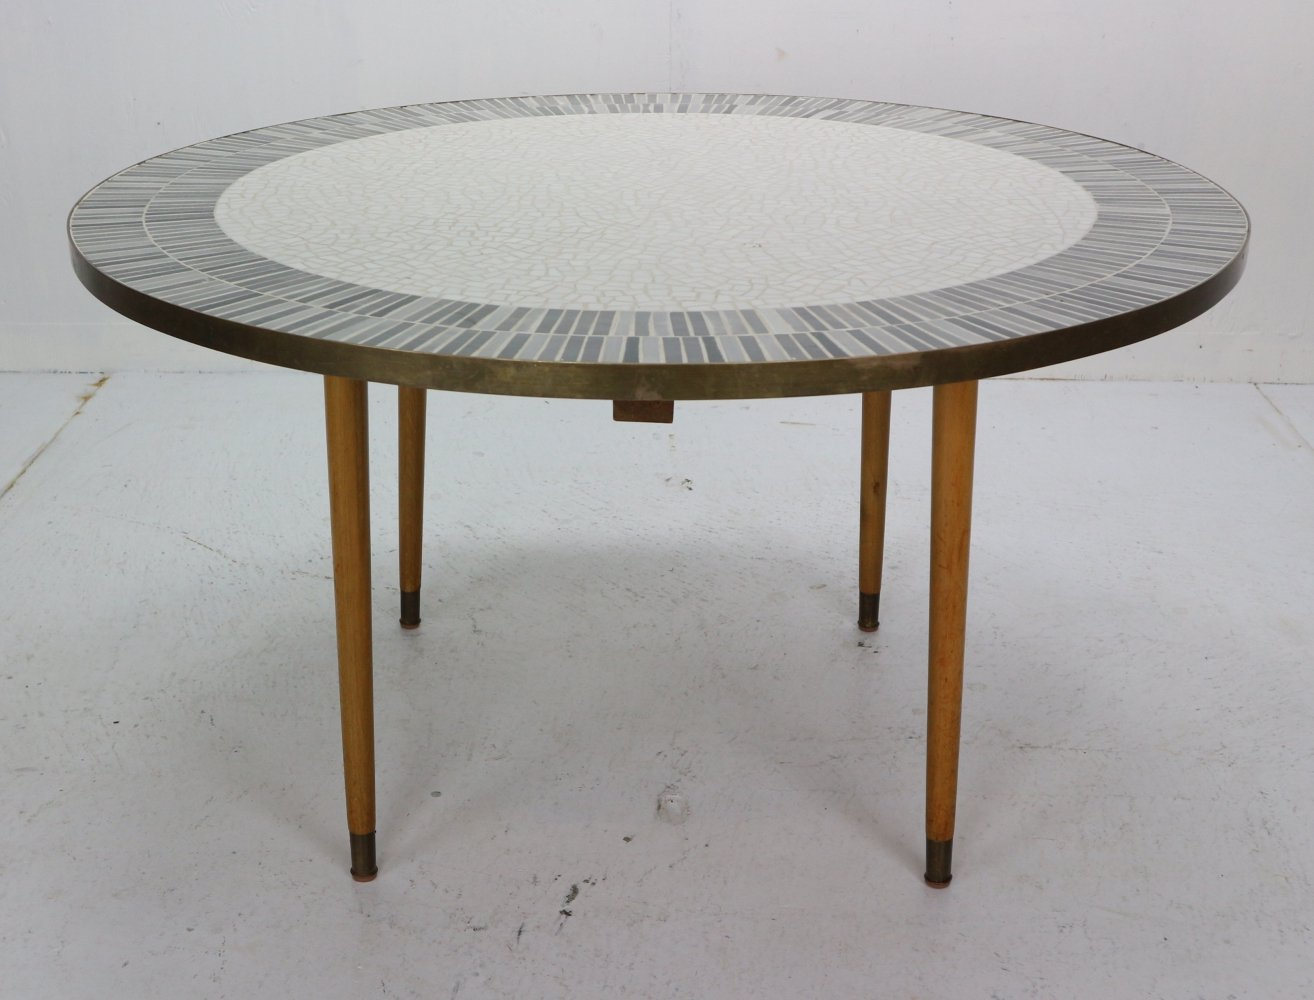 Berthold Muller Large Round Mosaic Coffee Table, Germany 1960s